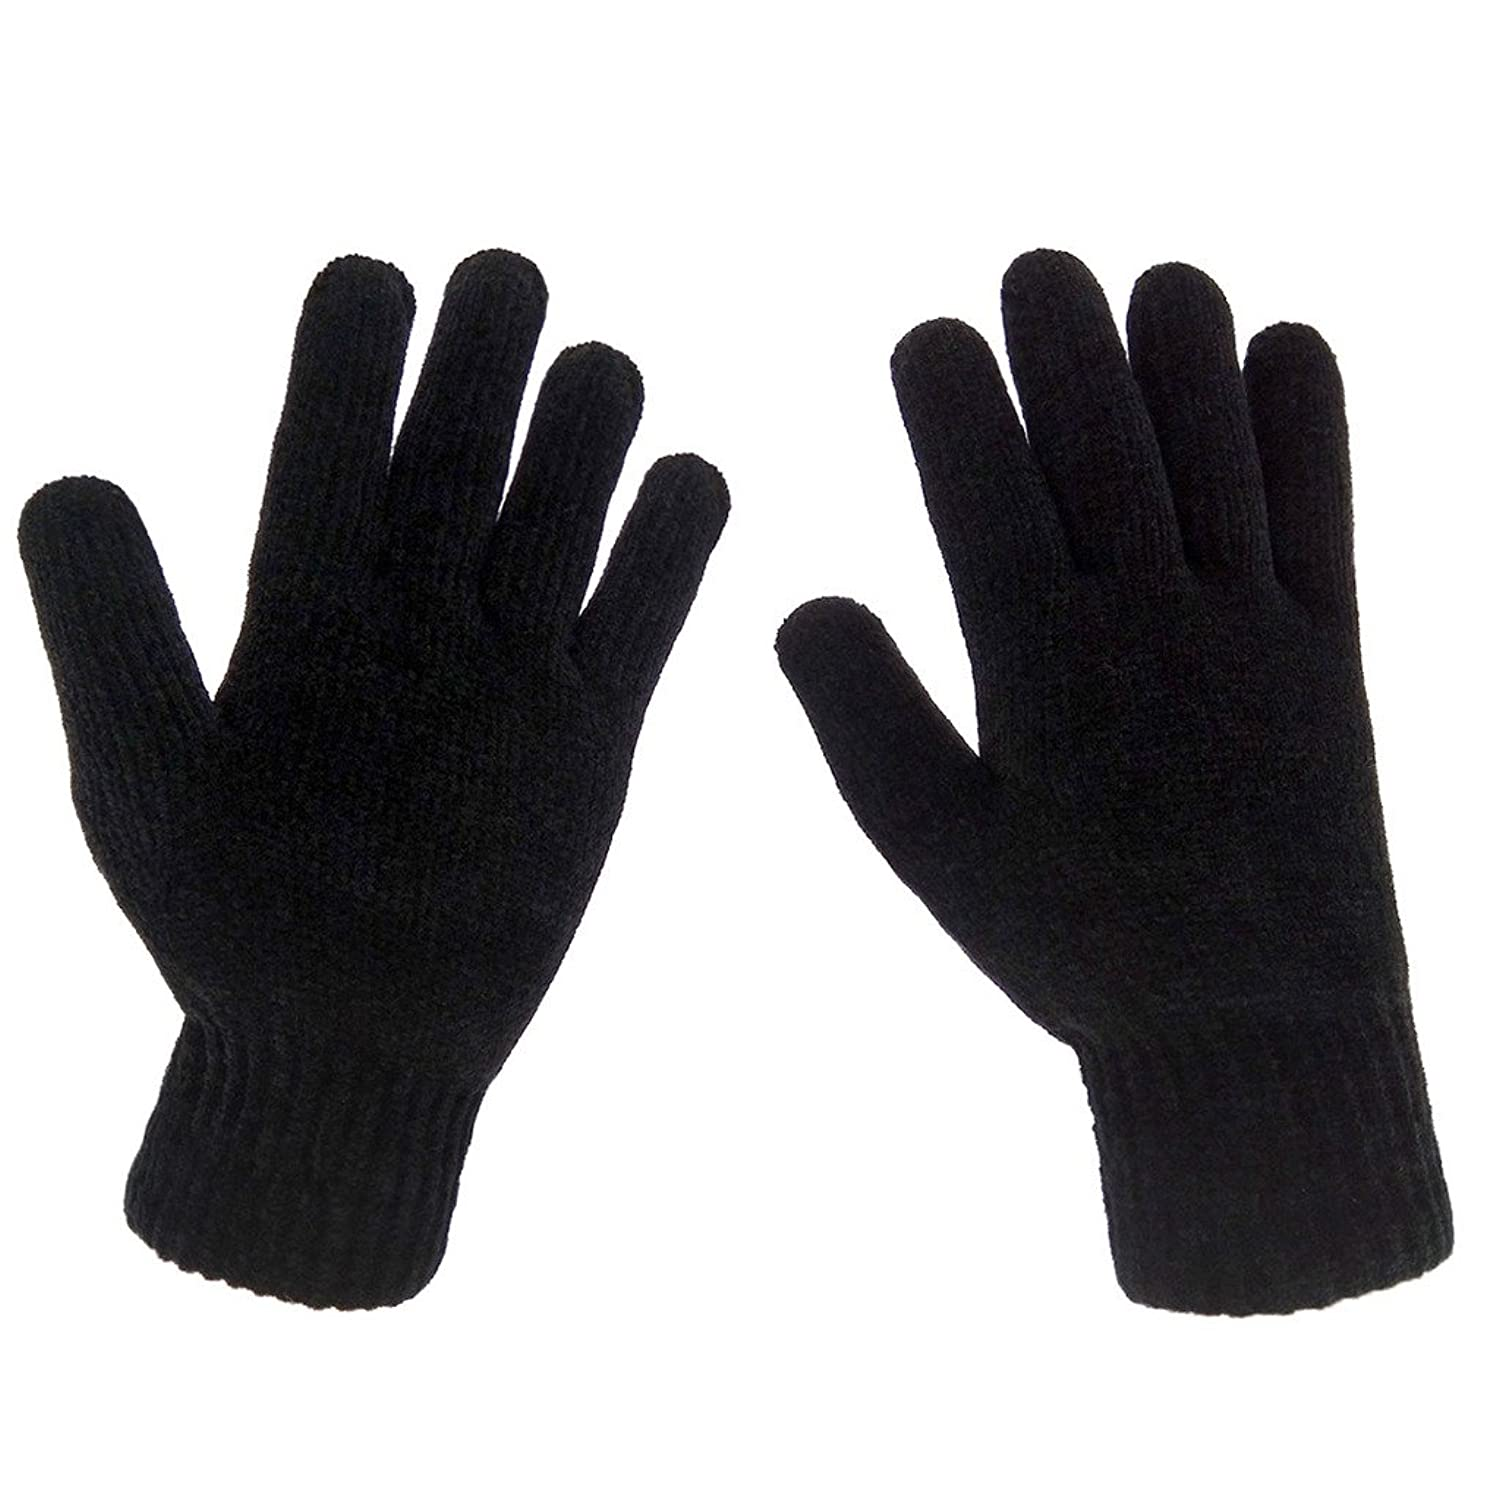 Black gloves mens - Lethmik Mens Winter Thick Black Knit Gloves With Warm Wool Lining At Amazon Men S Clothing Store